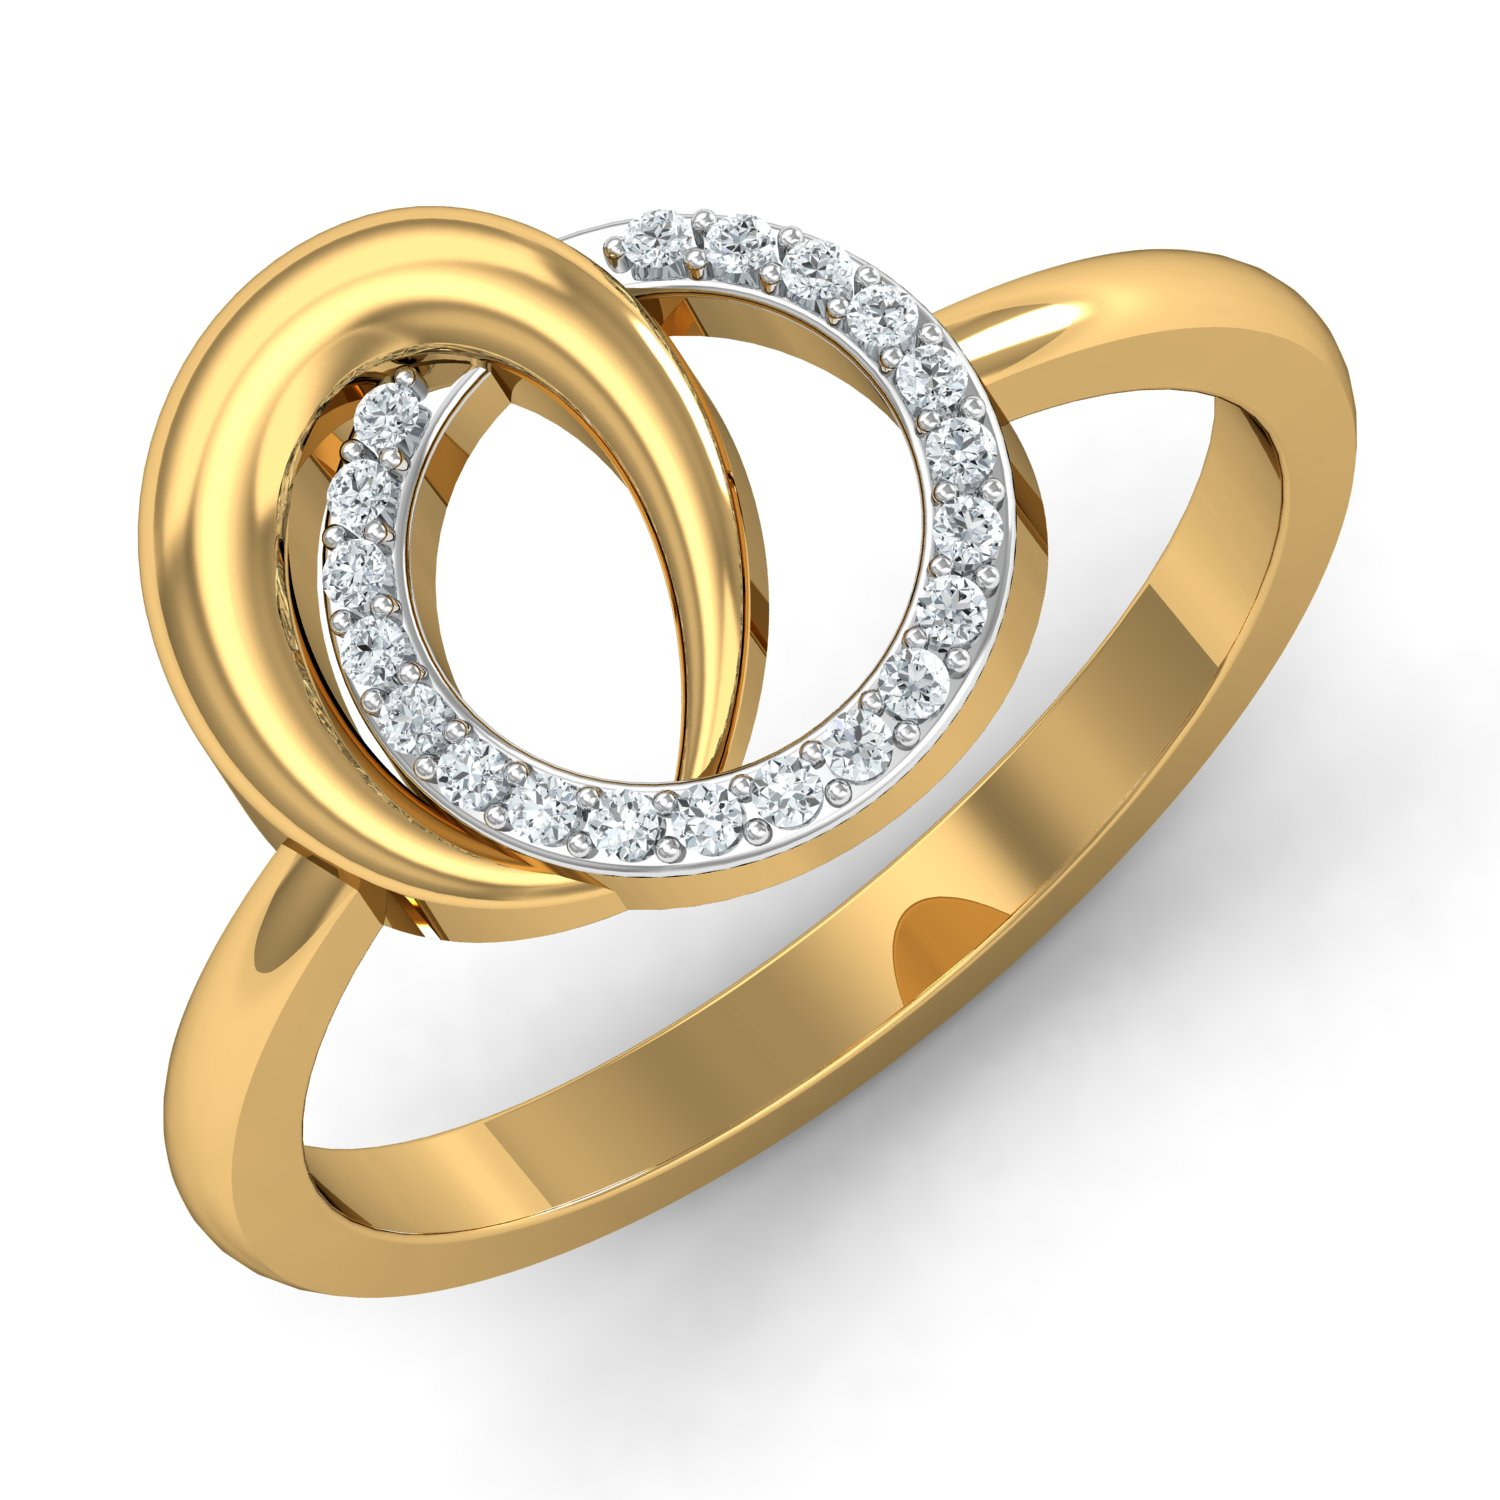 diamond ring design 0.1 ct natural solid gold office wear